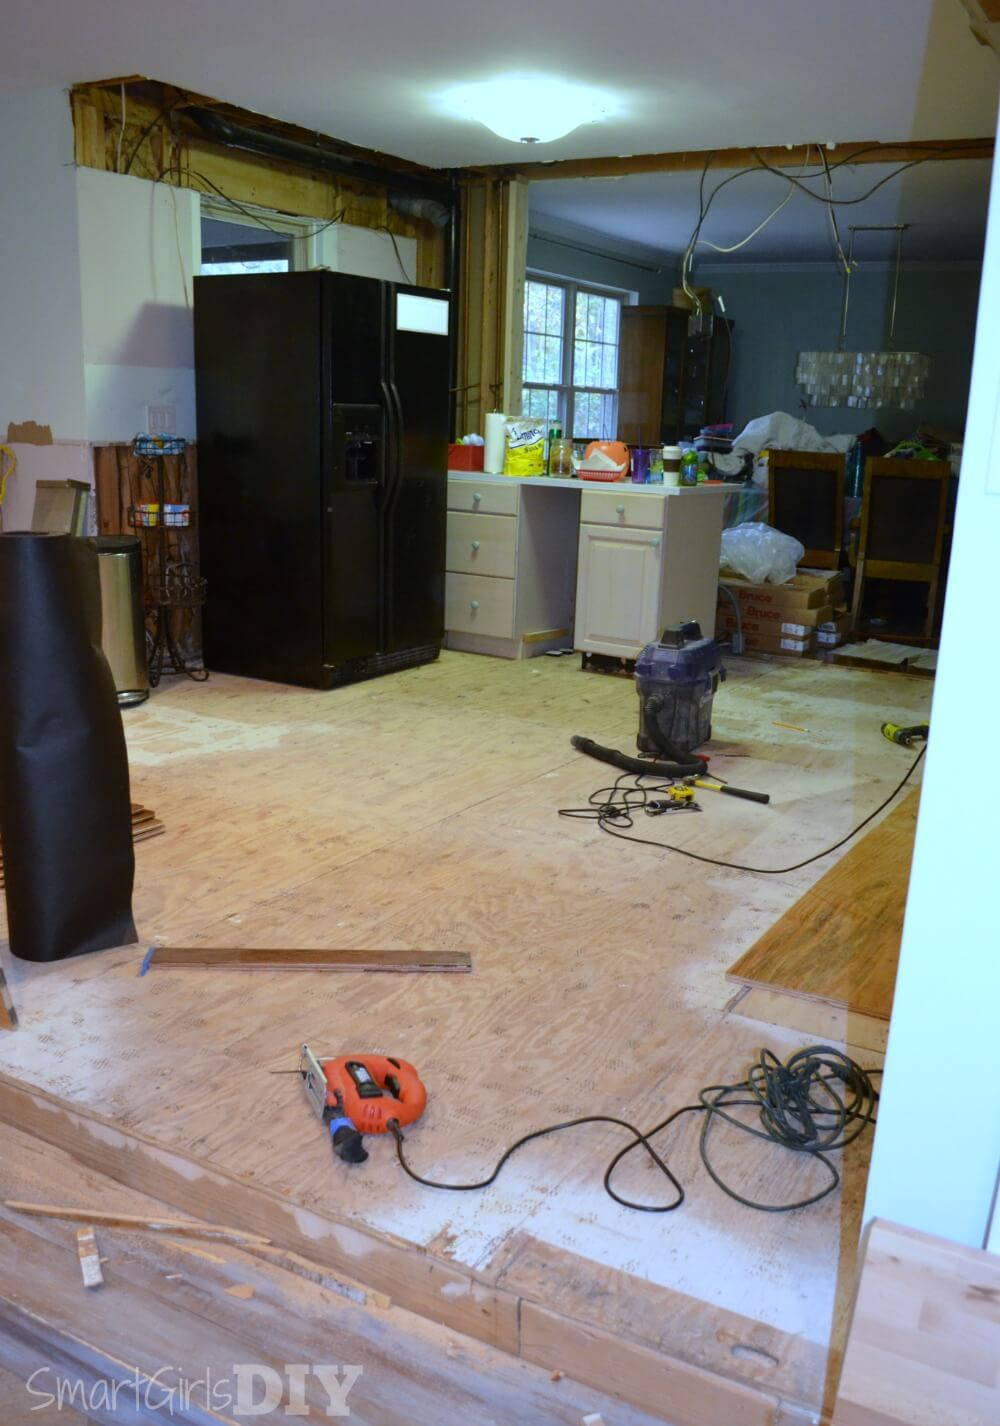 Getting read to install hardwood floors in the kitchen